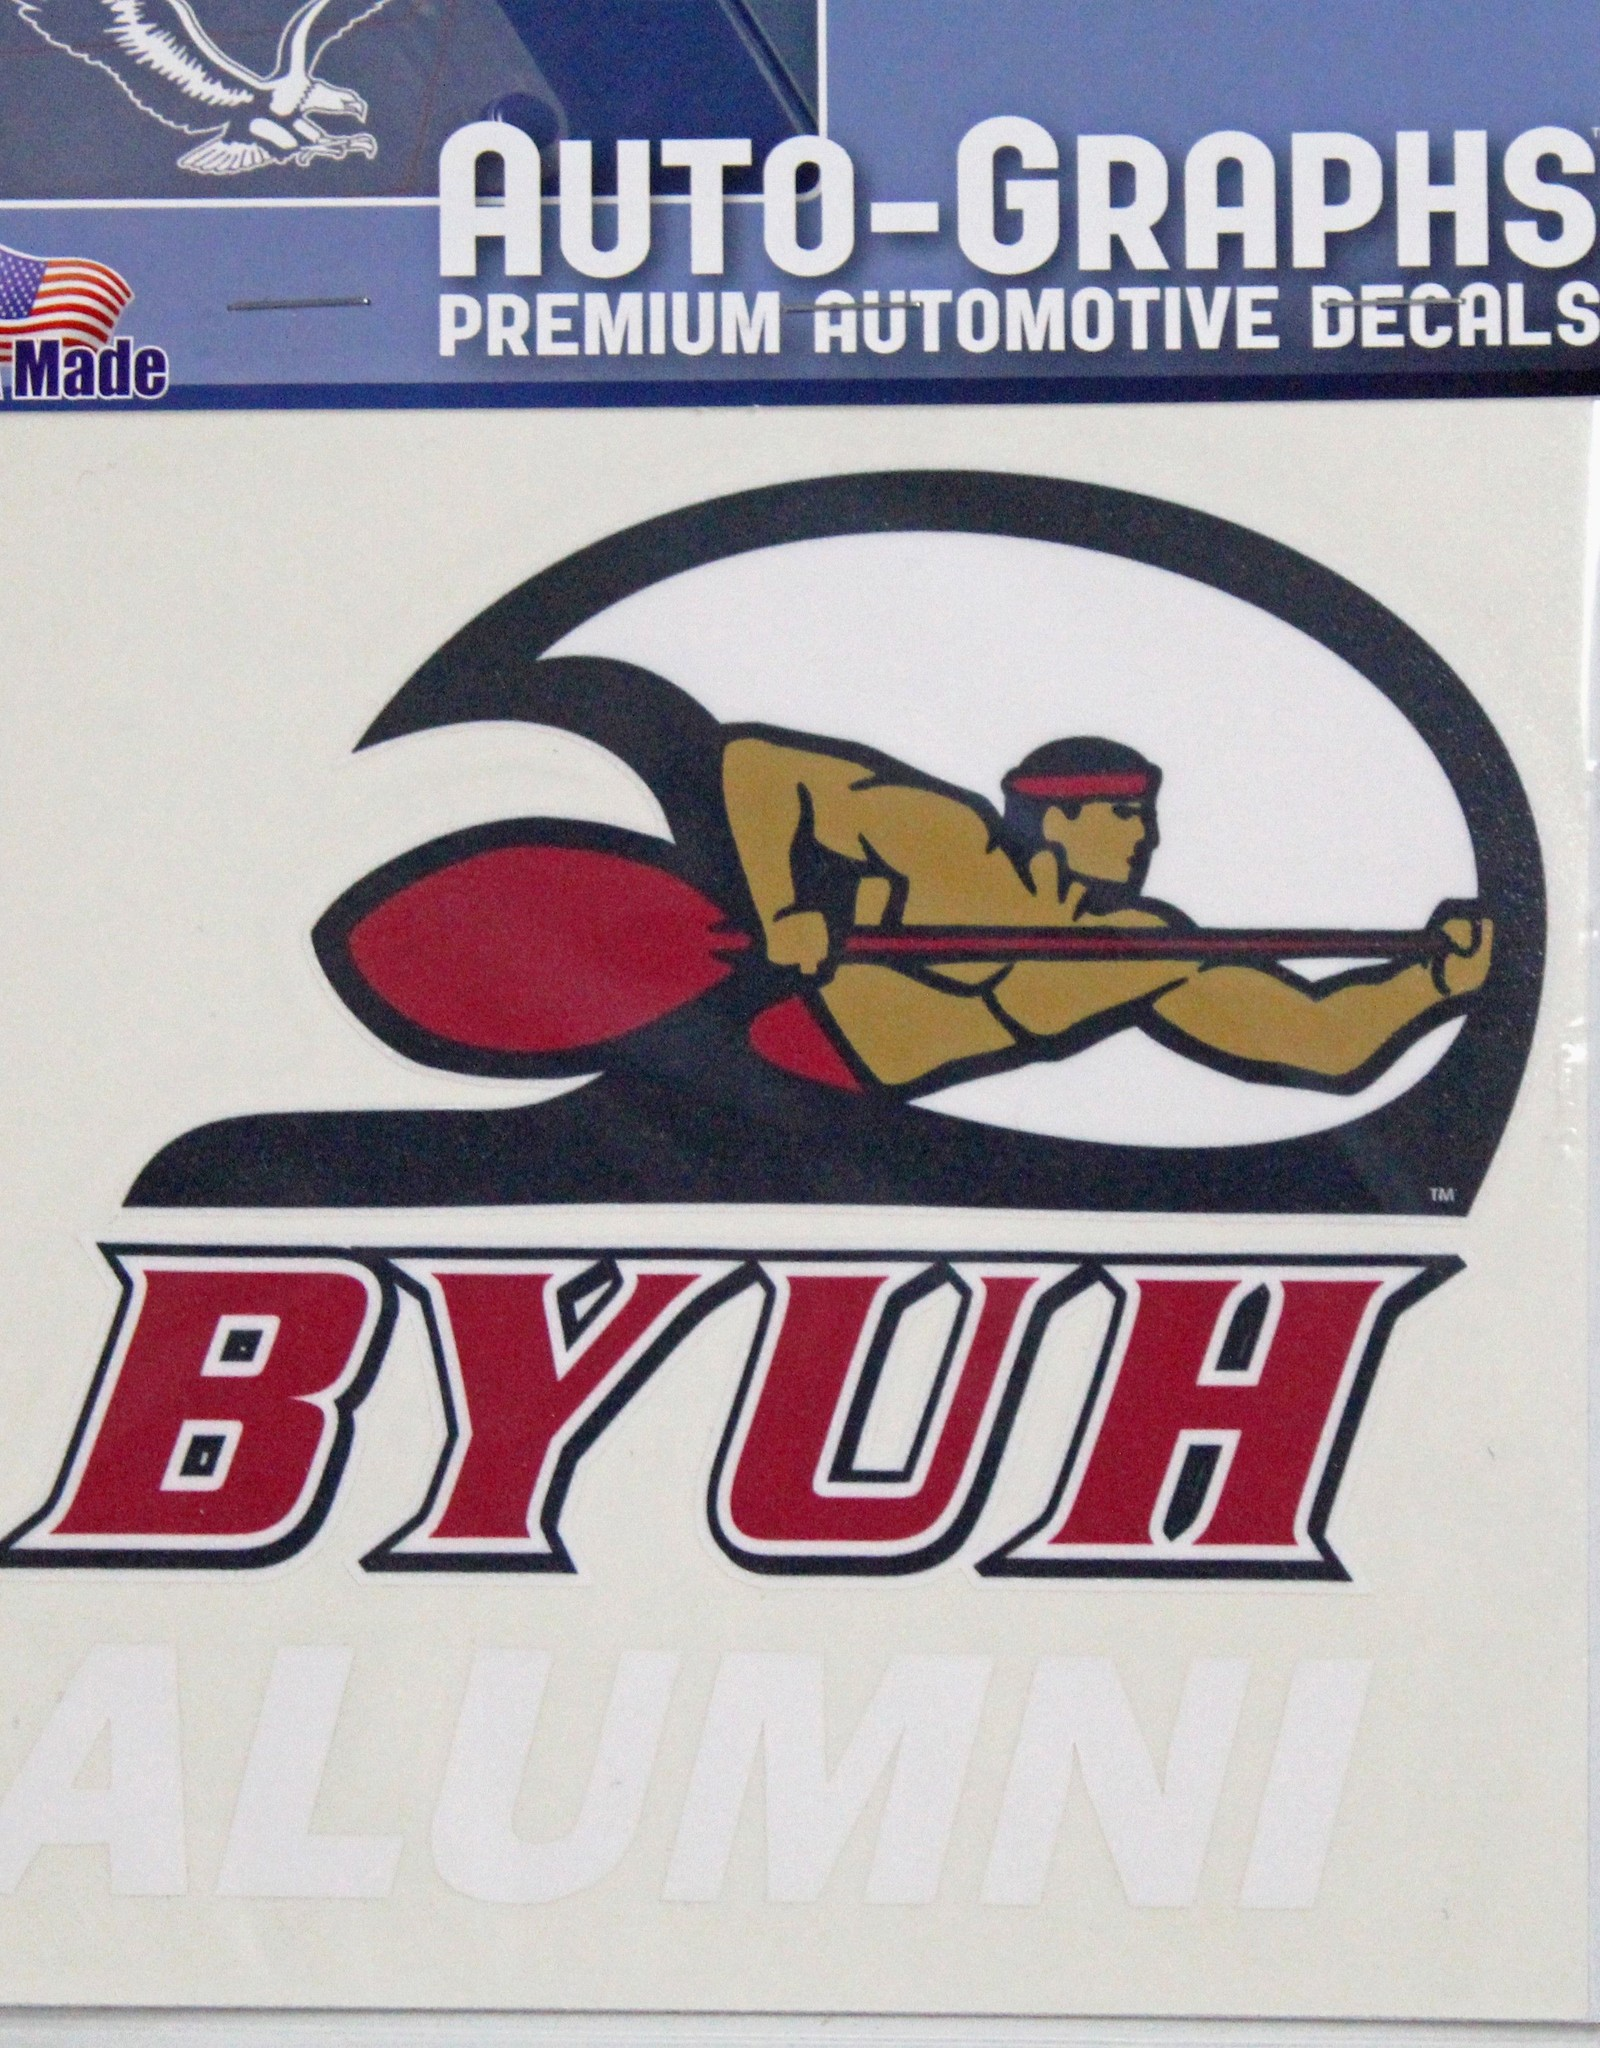 BYU-H Decals DECAL LARGE BYUH -